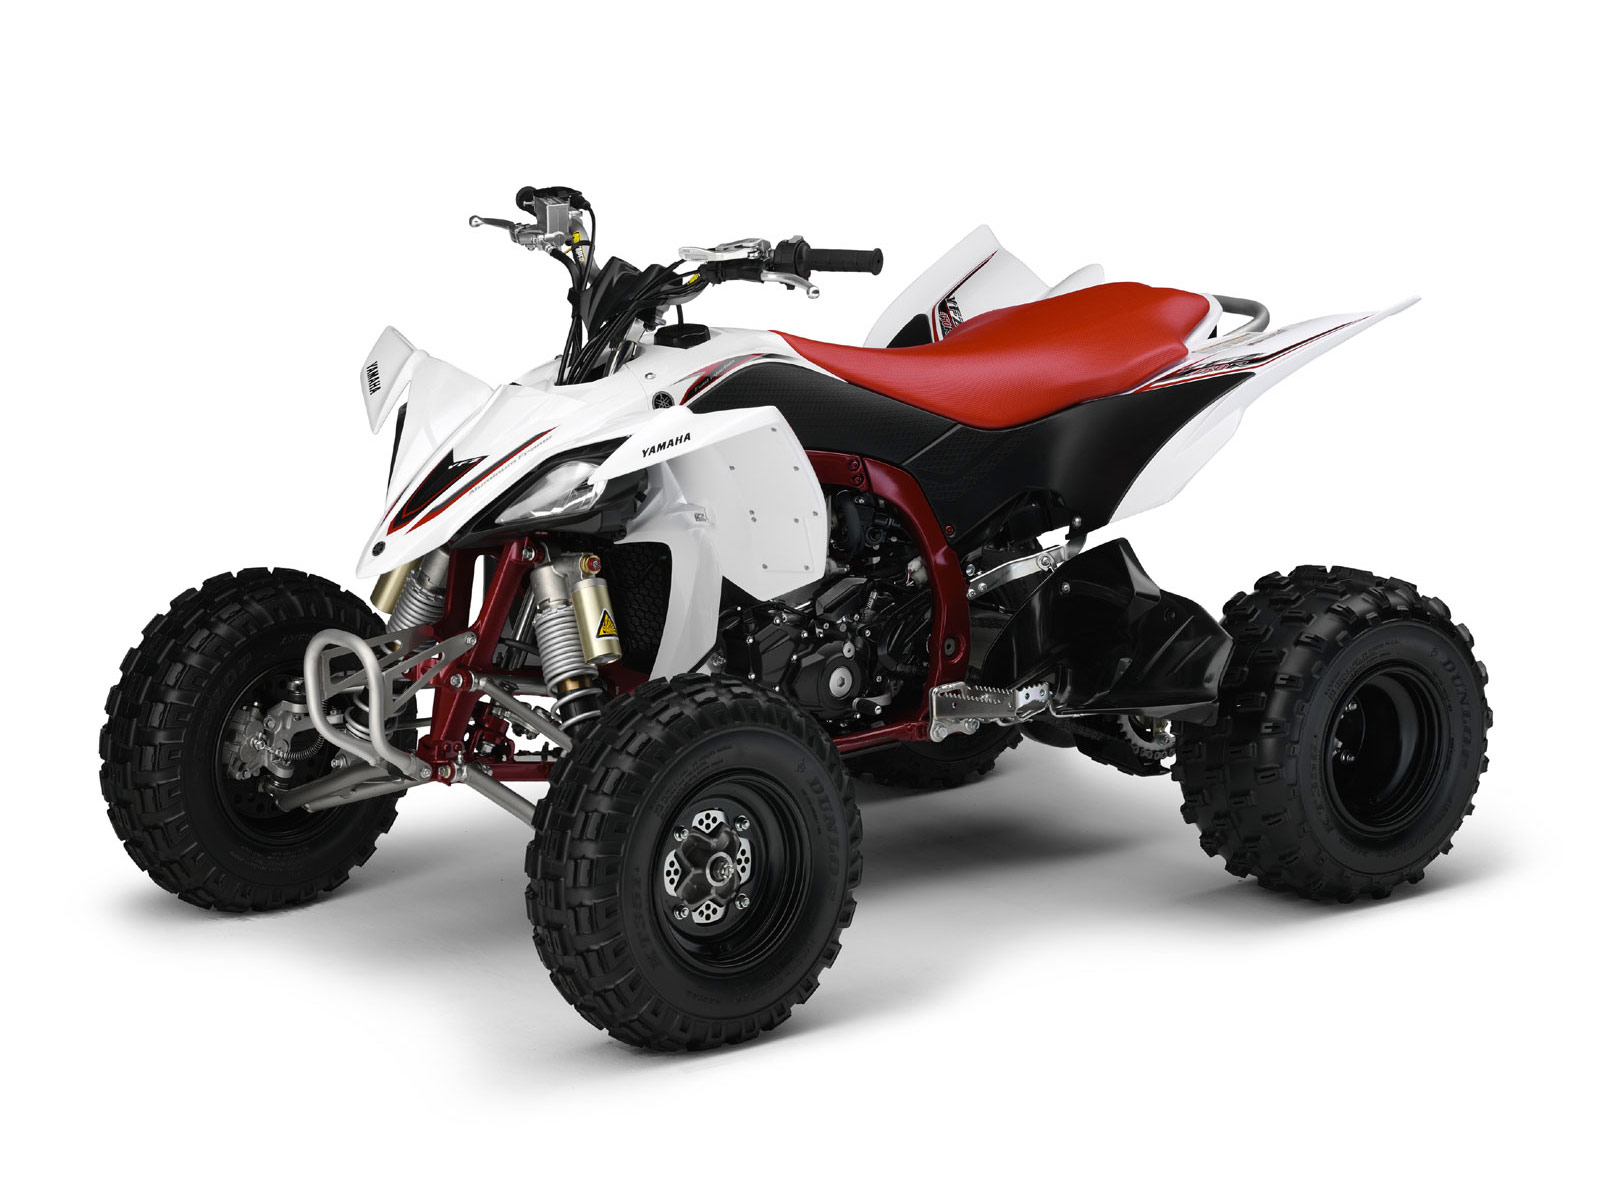 Yamaha Yfz450r Pictures And Specifications